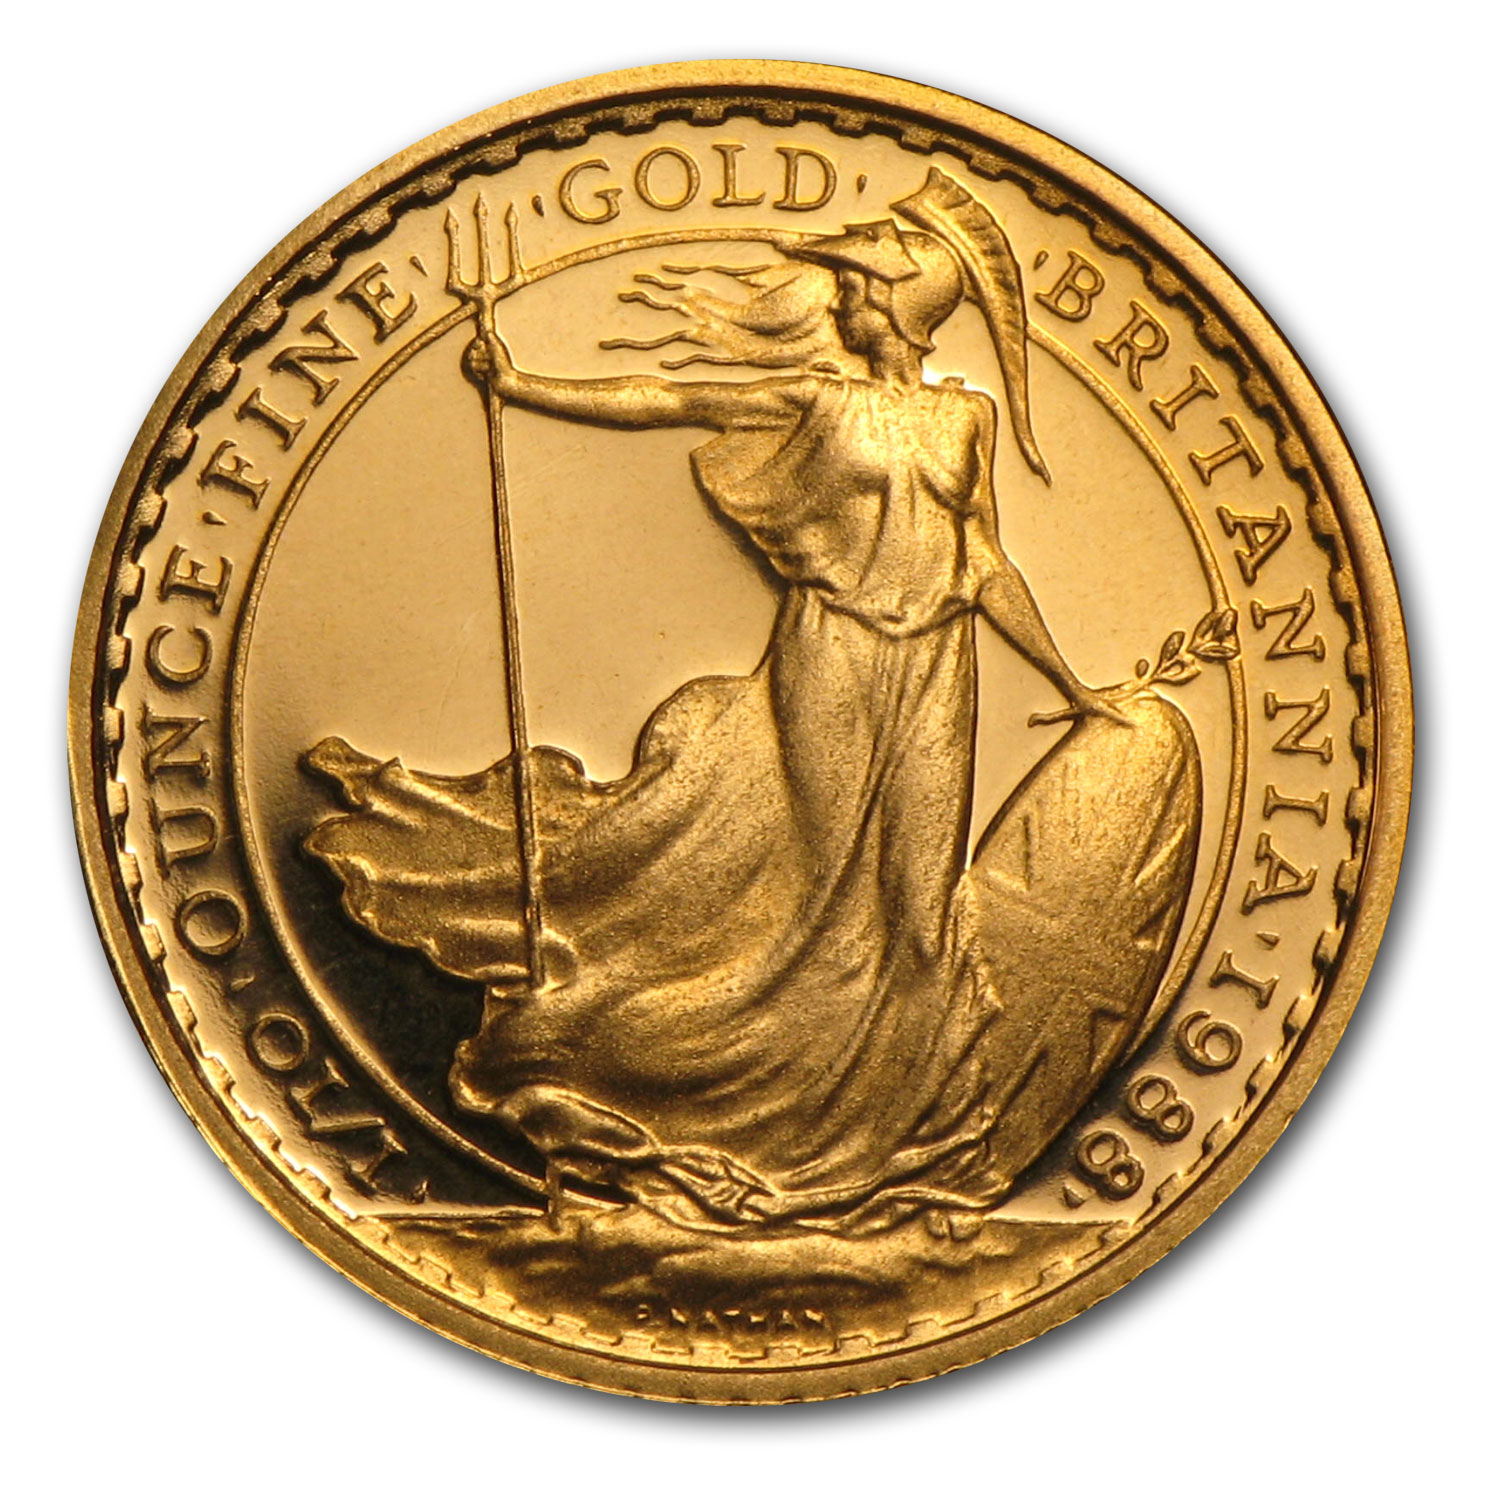 1988 1/10 oz Proof Gold Britannia